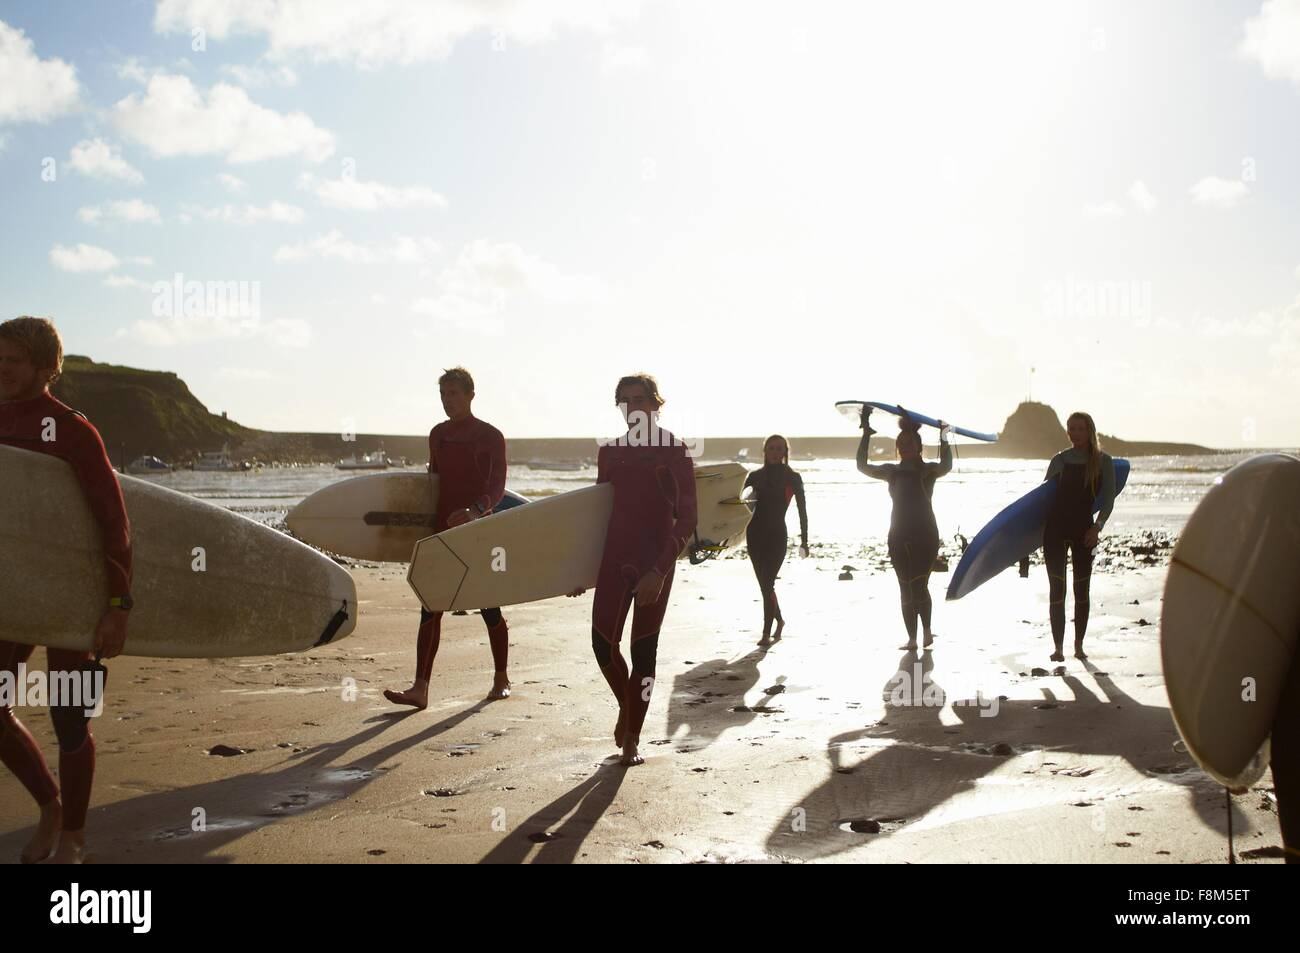 Group of surfers, walking on beach, carrying surfboards - Stock Image